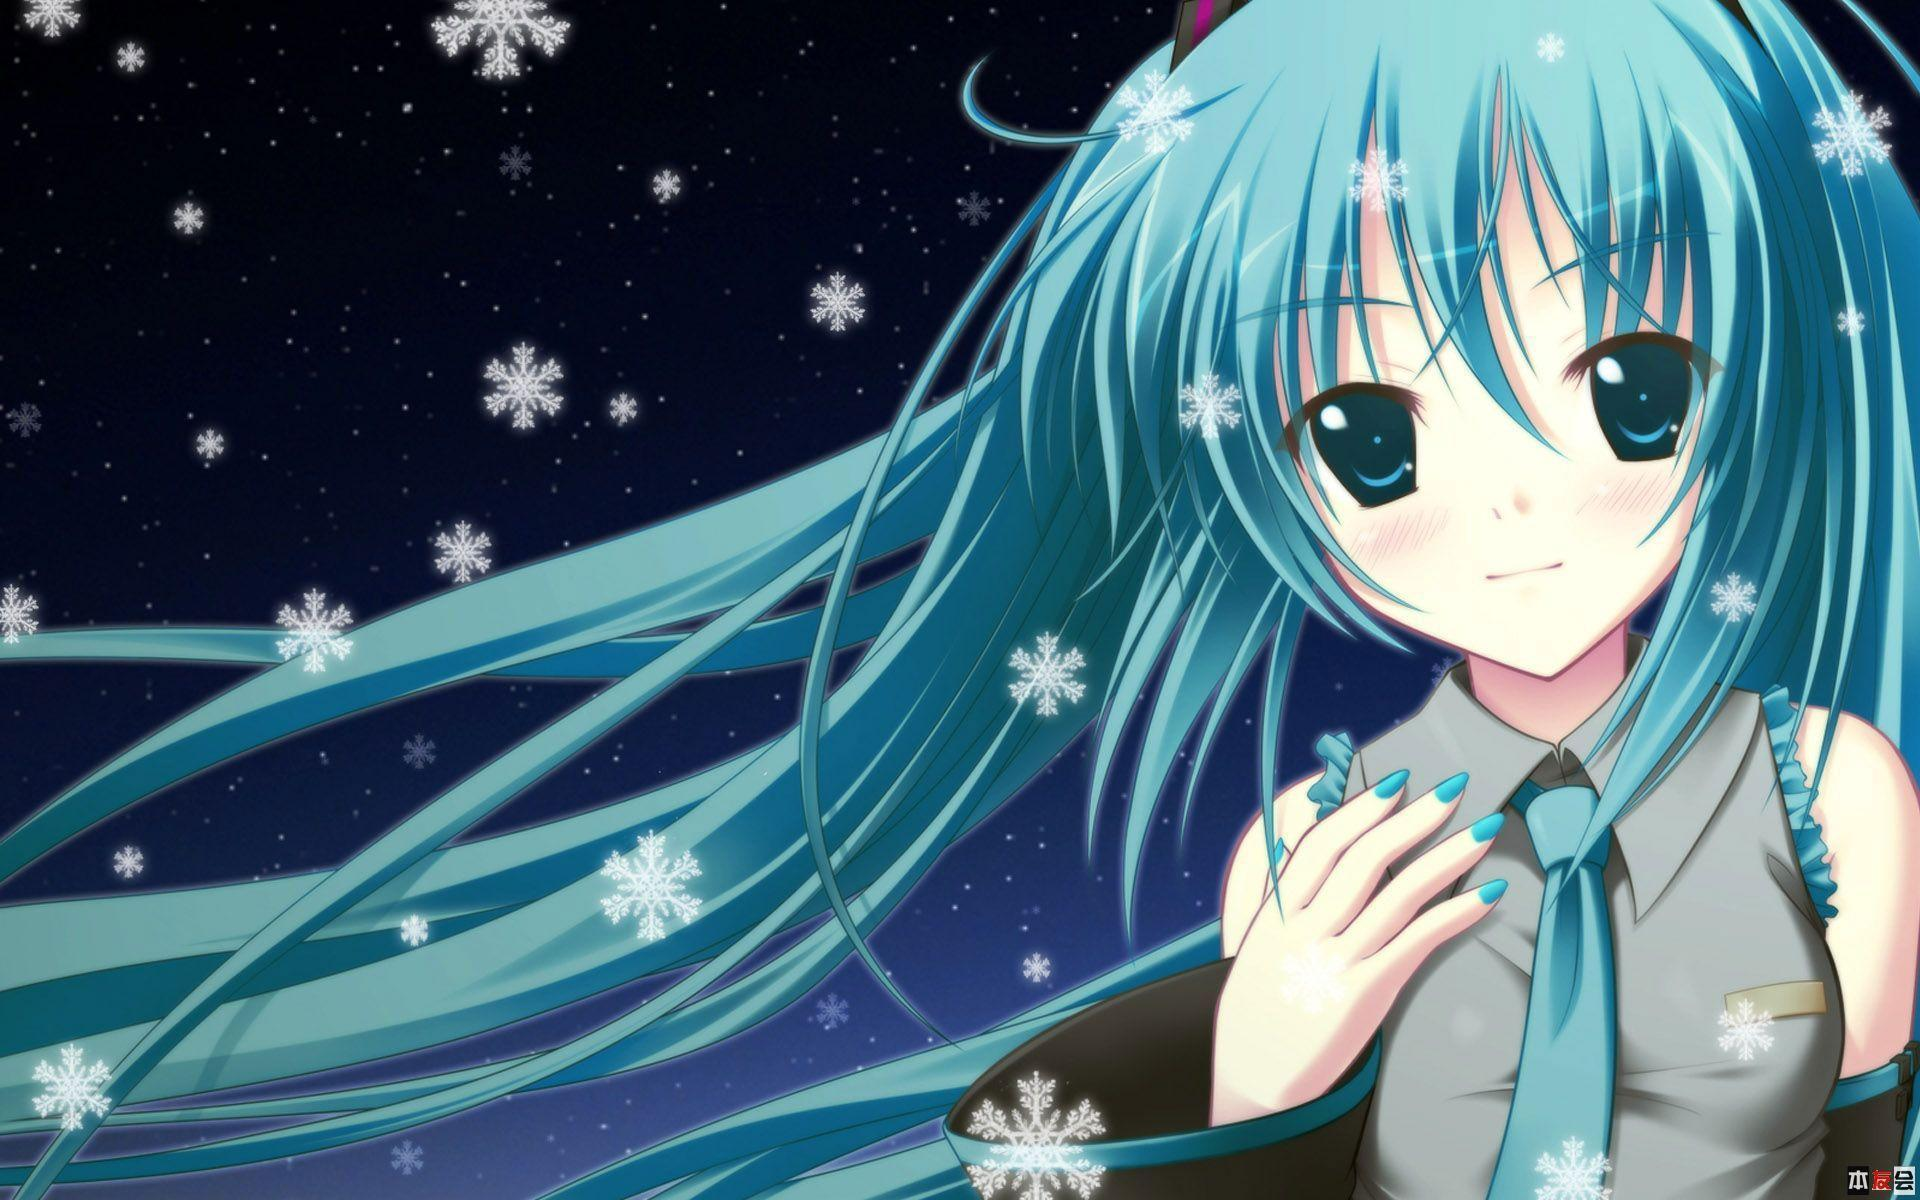 Cute Anime Girl Wallpapers Top Free Cute Anime Girl Backgrounds